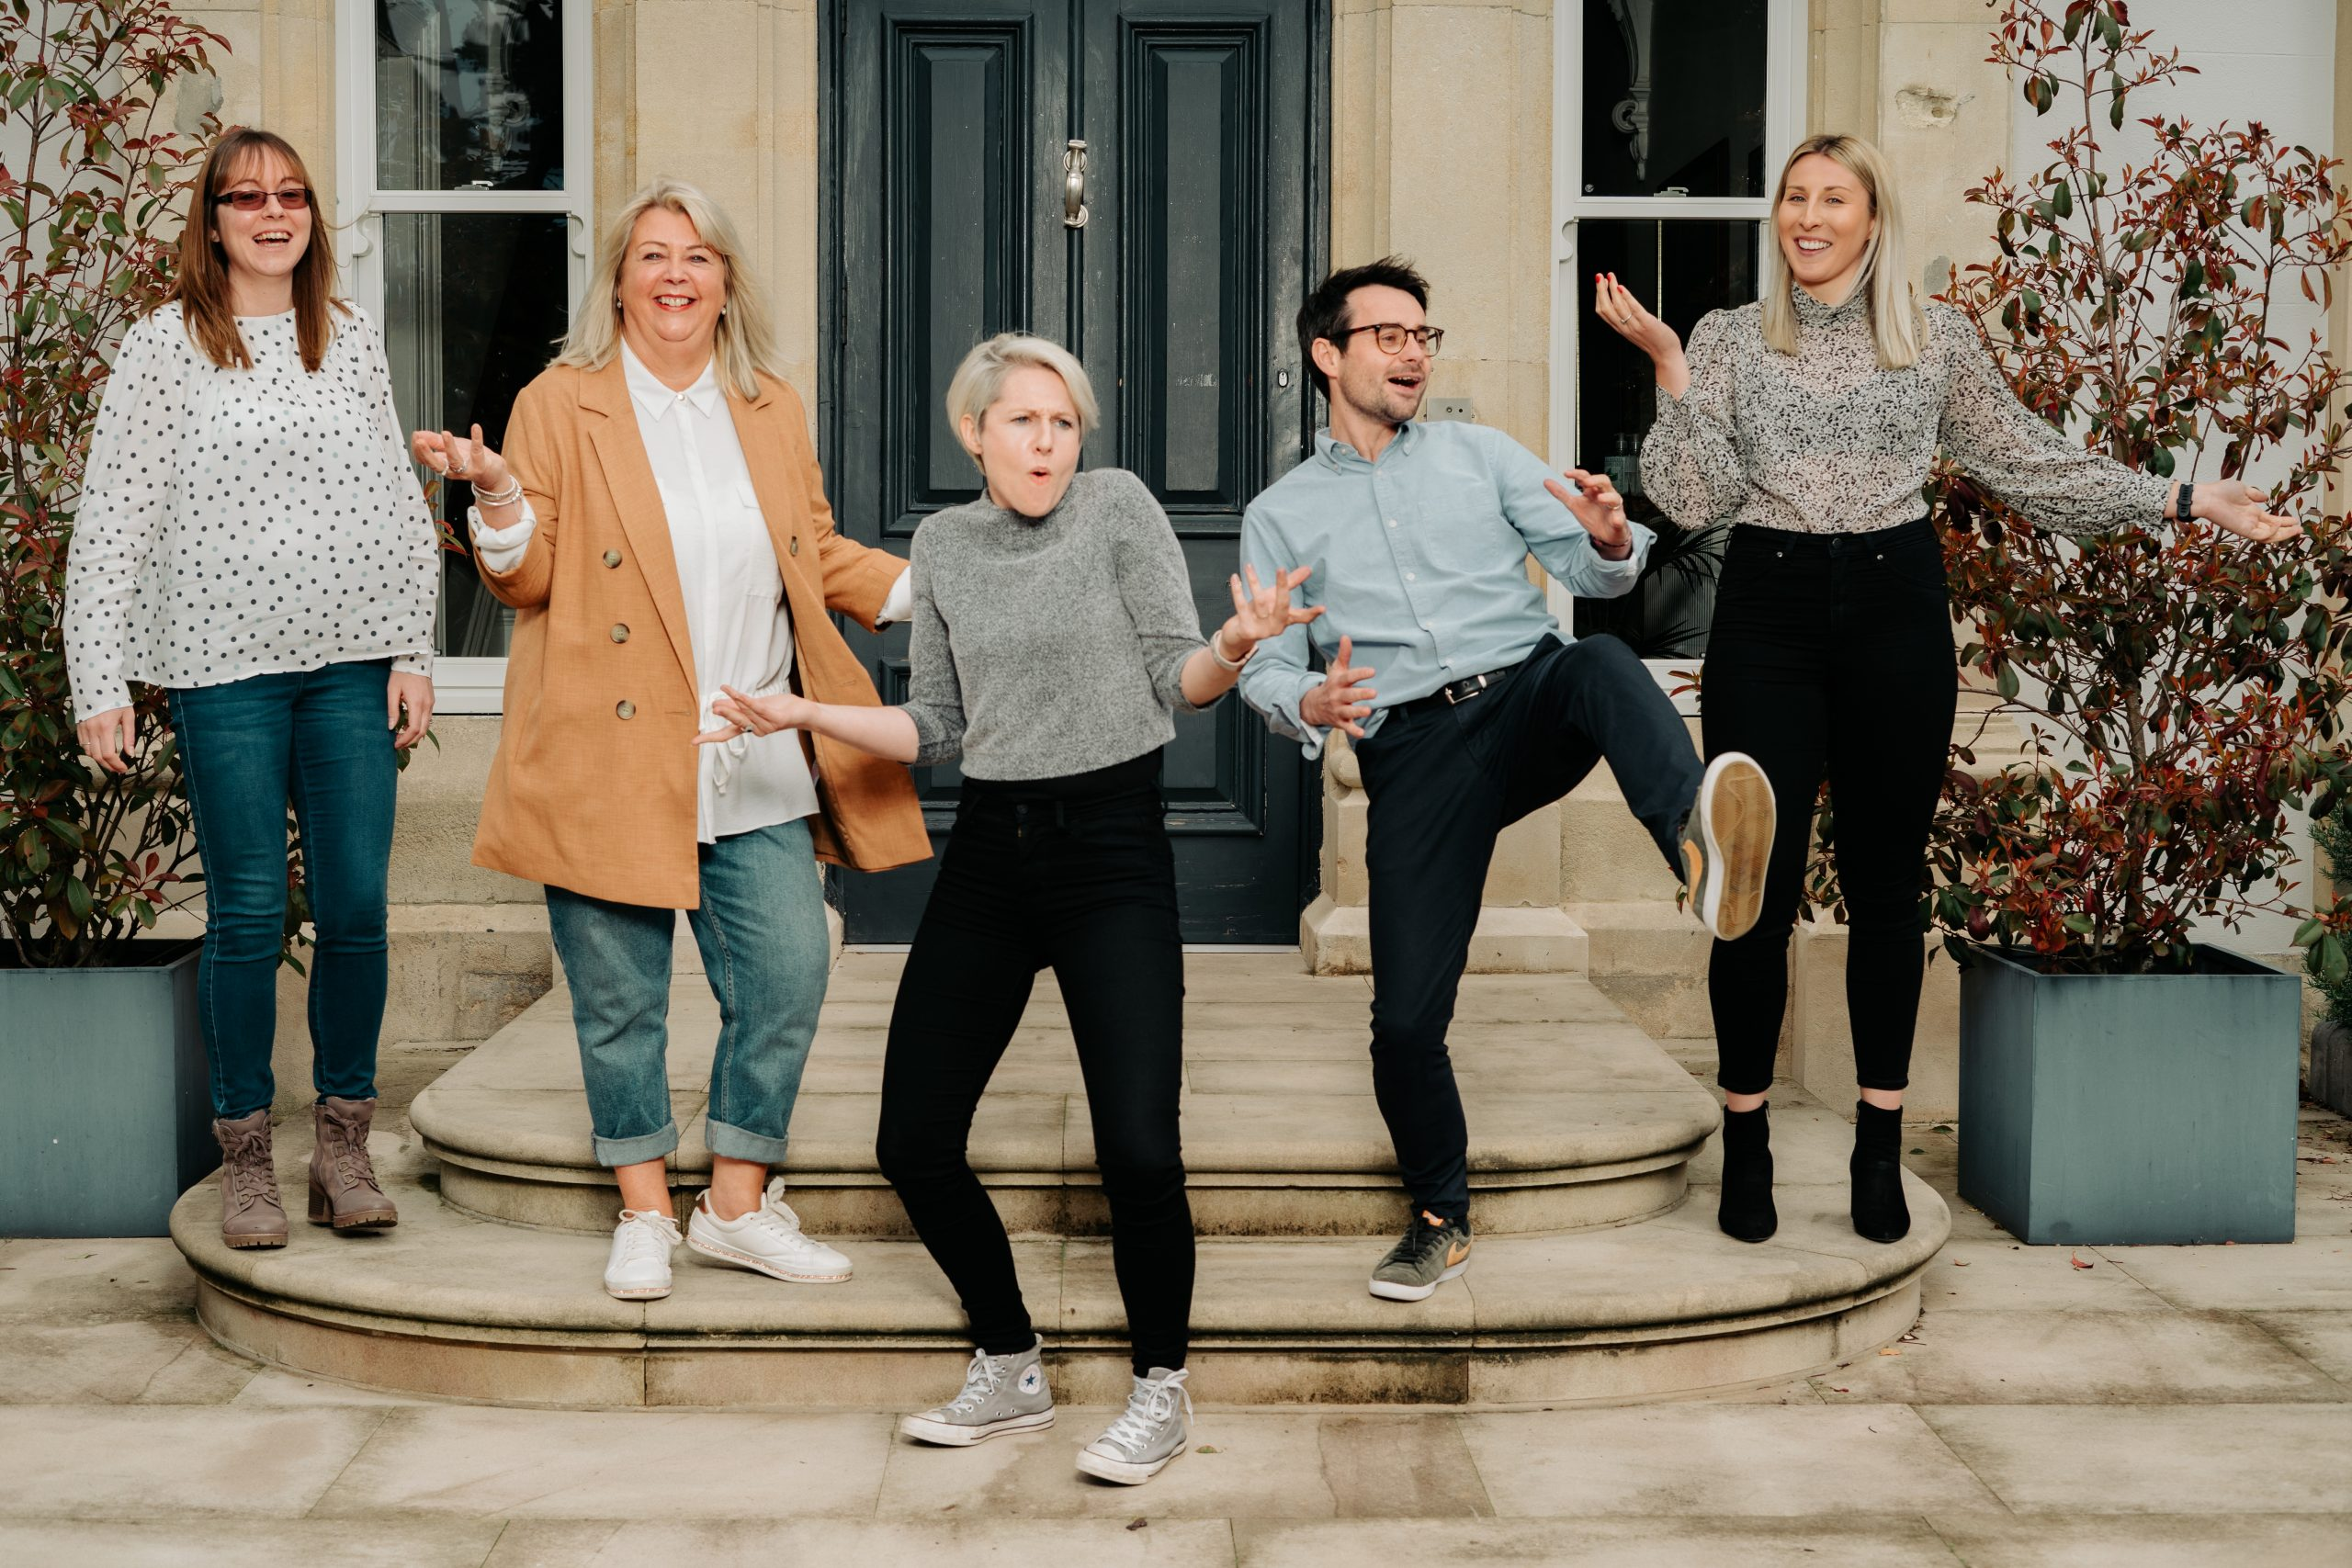 The Vibrant Accountancy Team have gone from strength to strength in 2020.